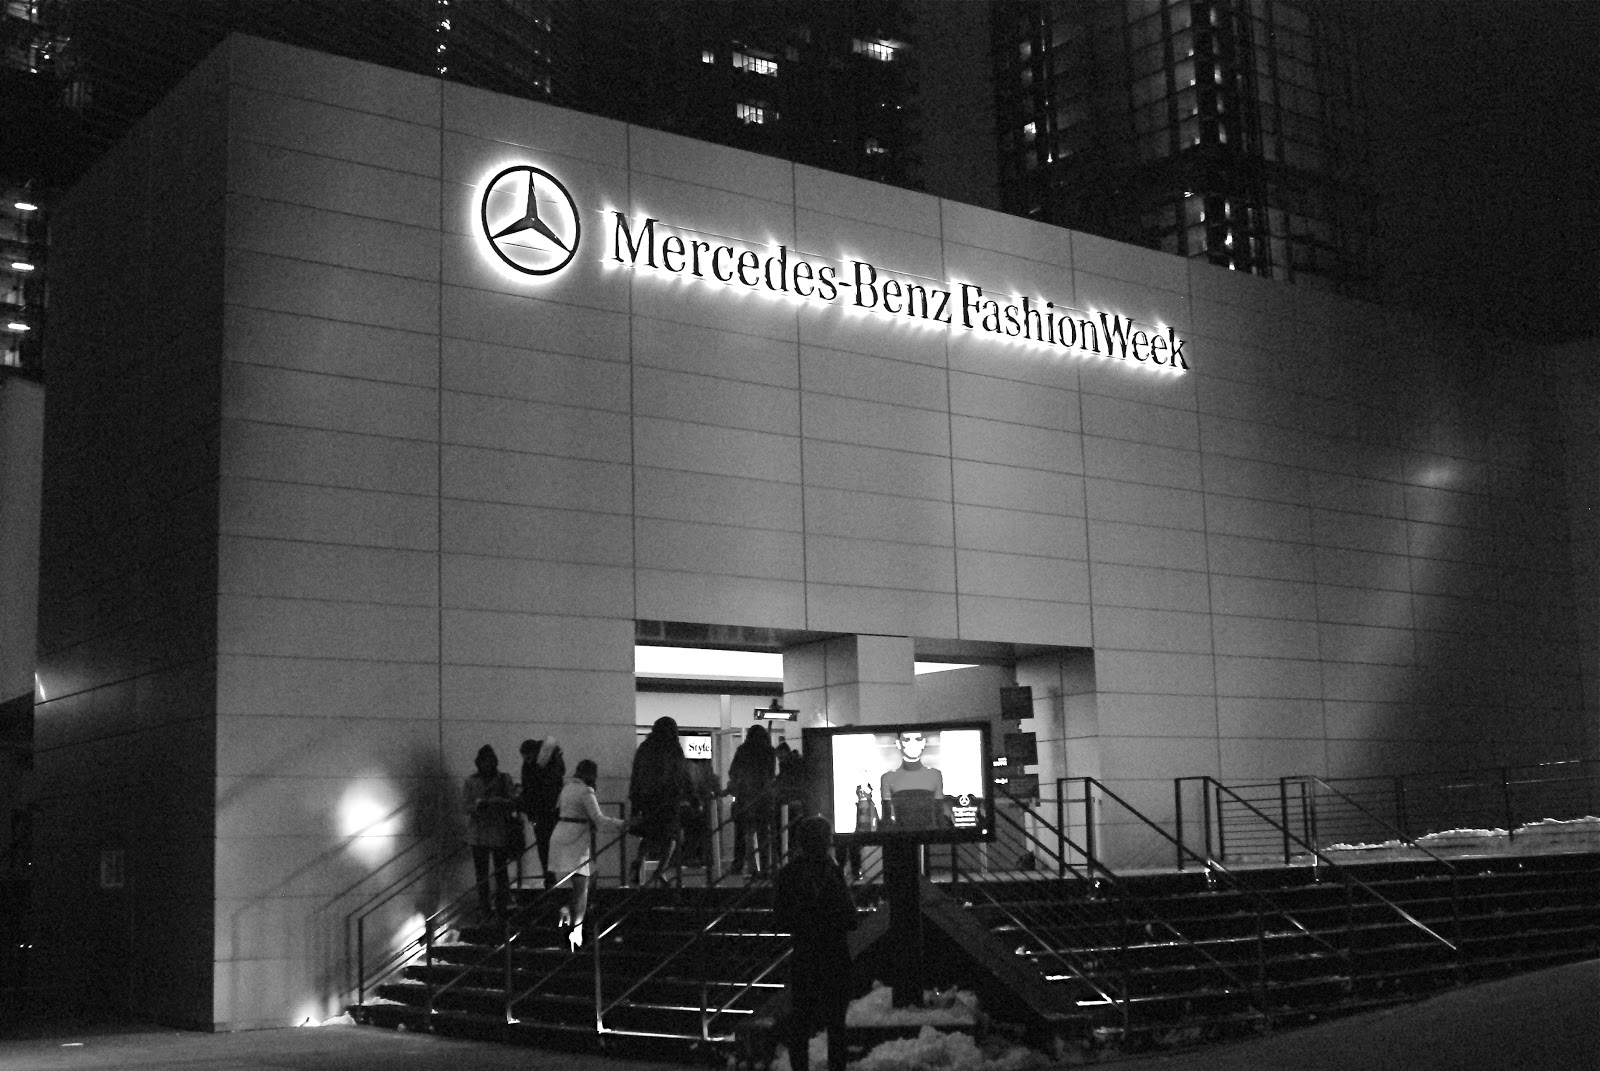 New York Mercedes-Benz Fashion Week – Image via NYC loves NYC